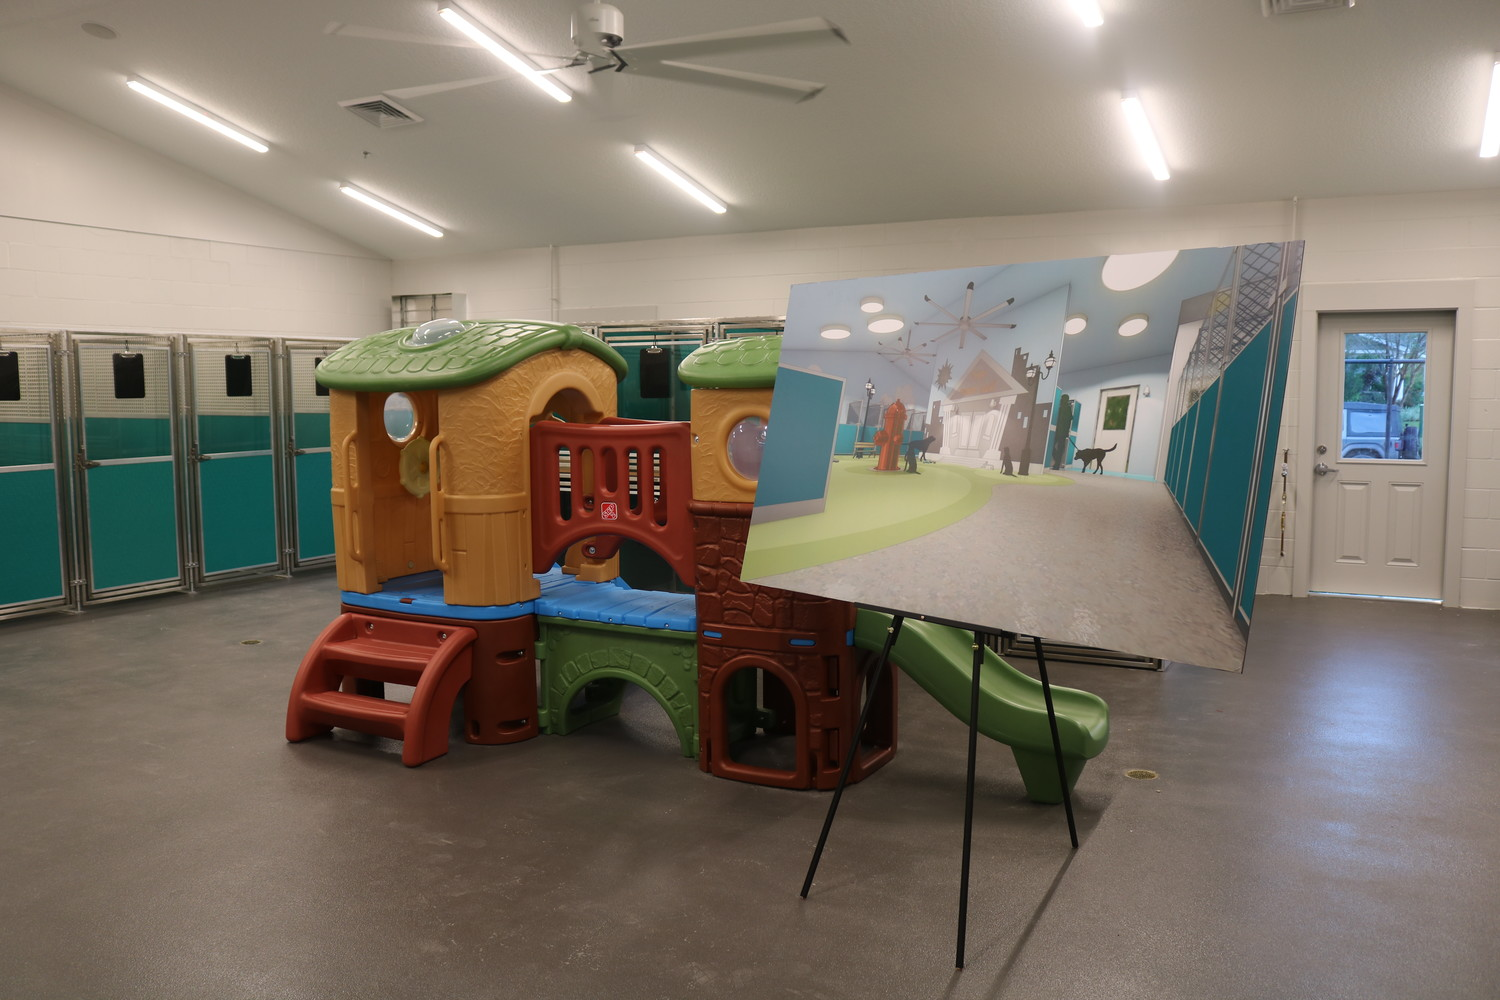 A playground for pets is offered at the Pet Paradise Bartram location.